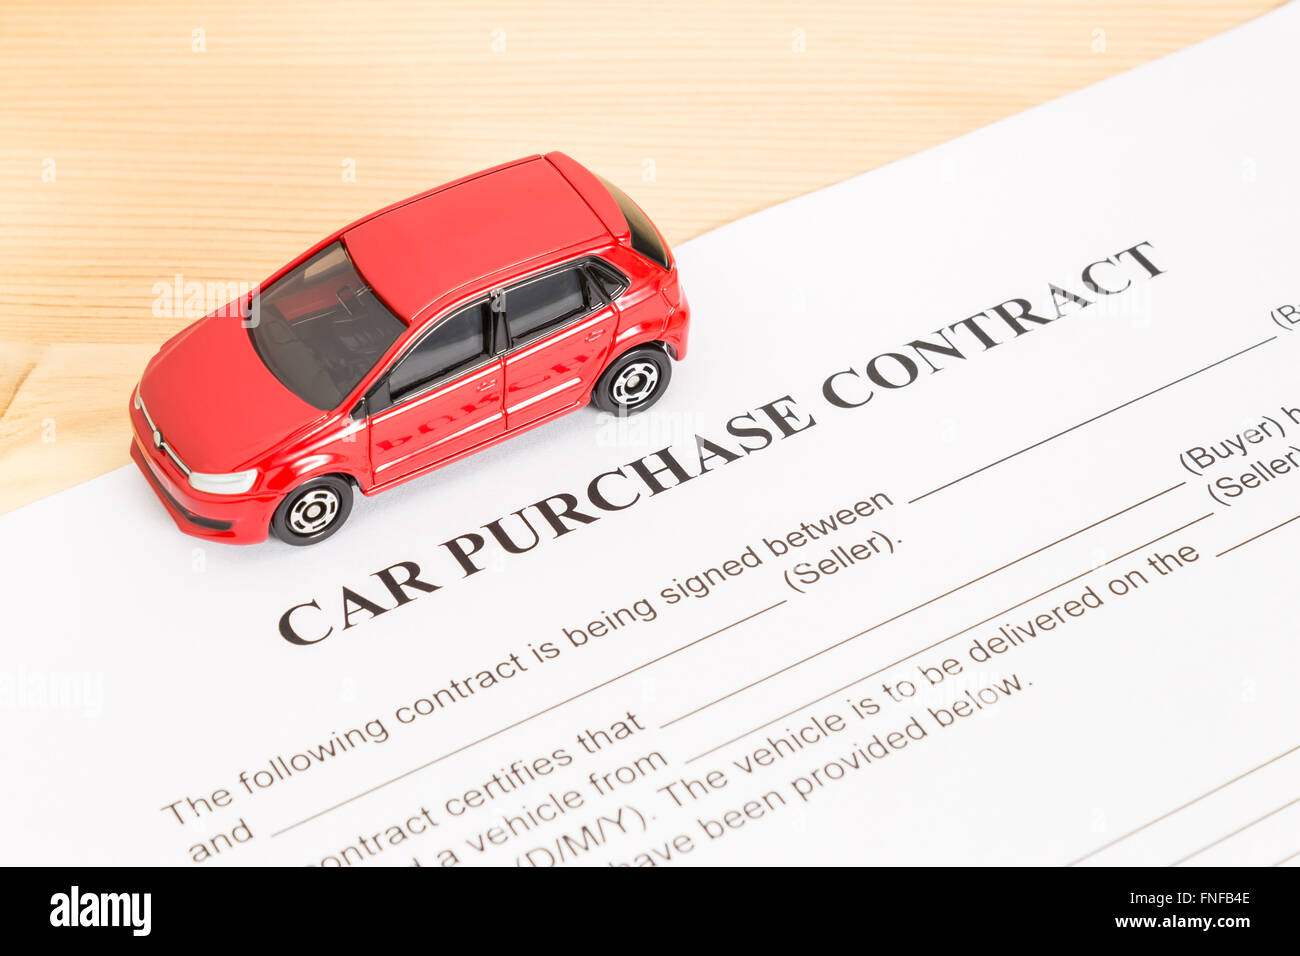 Car Purchase Contract With Red Car On Left View. Auto Purchase Agreement Or  Legal Document  Auto Purchase Agreement